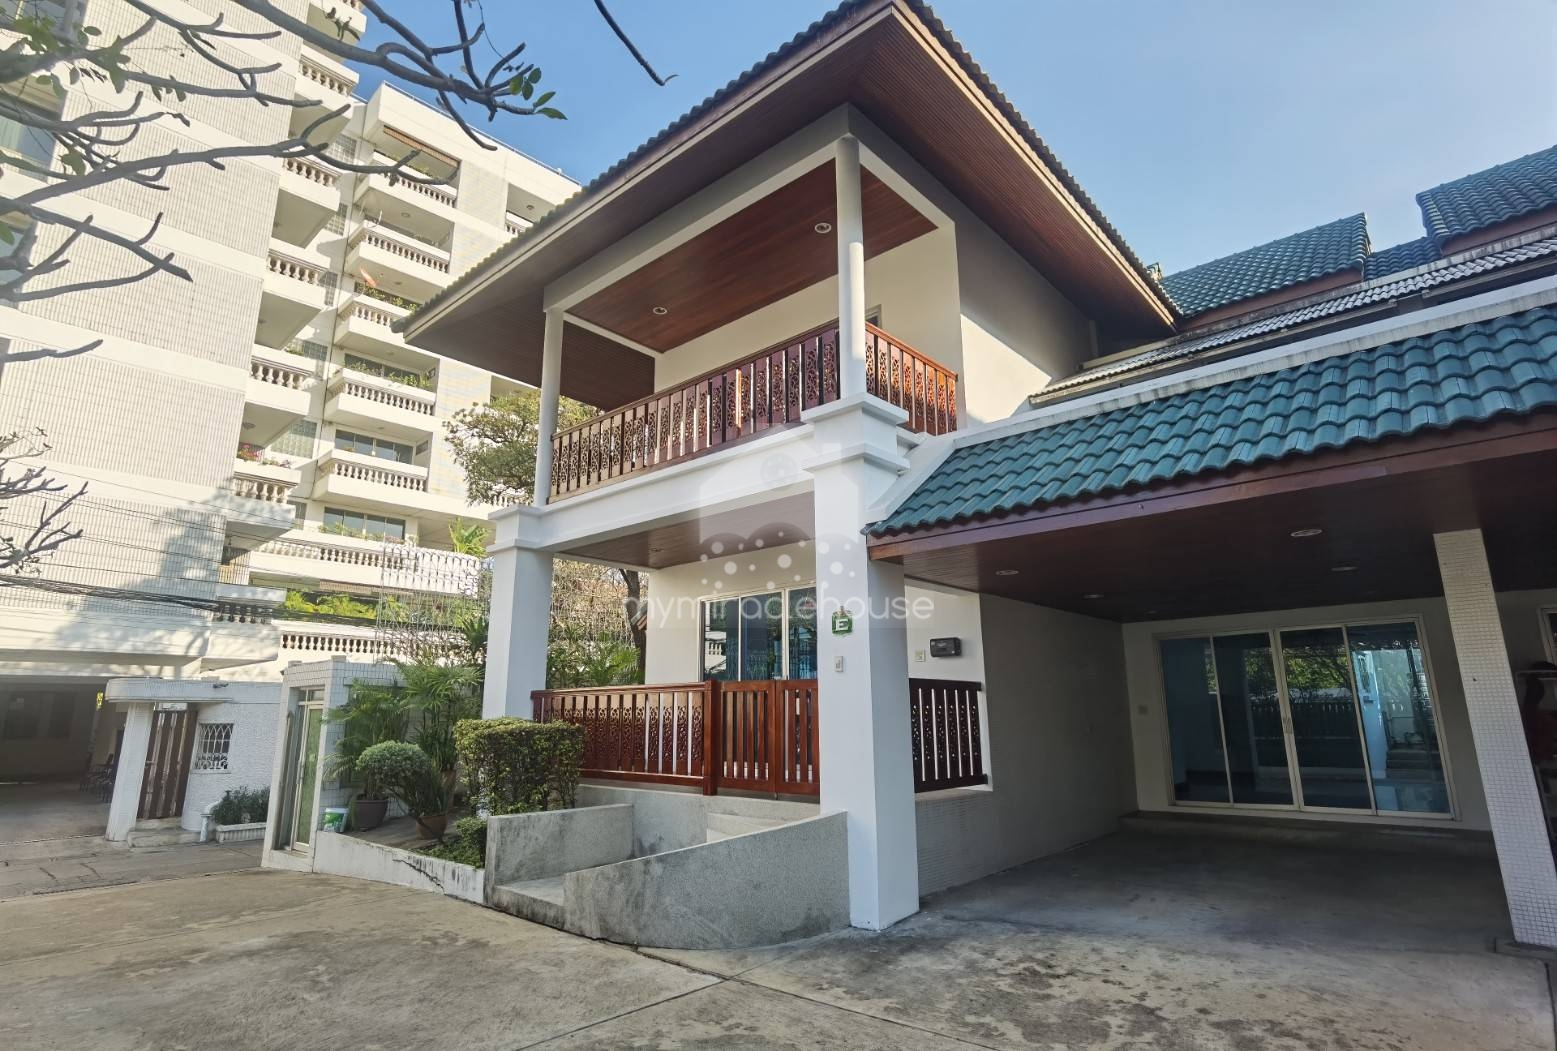 4 bedrooms house for rent in secured compound Phrom Phong.